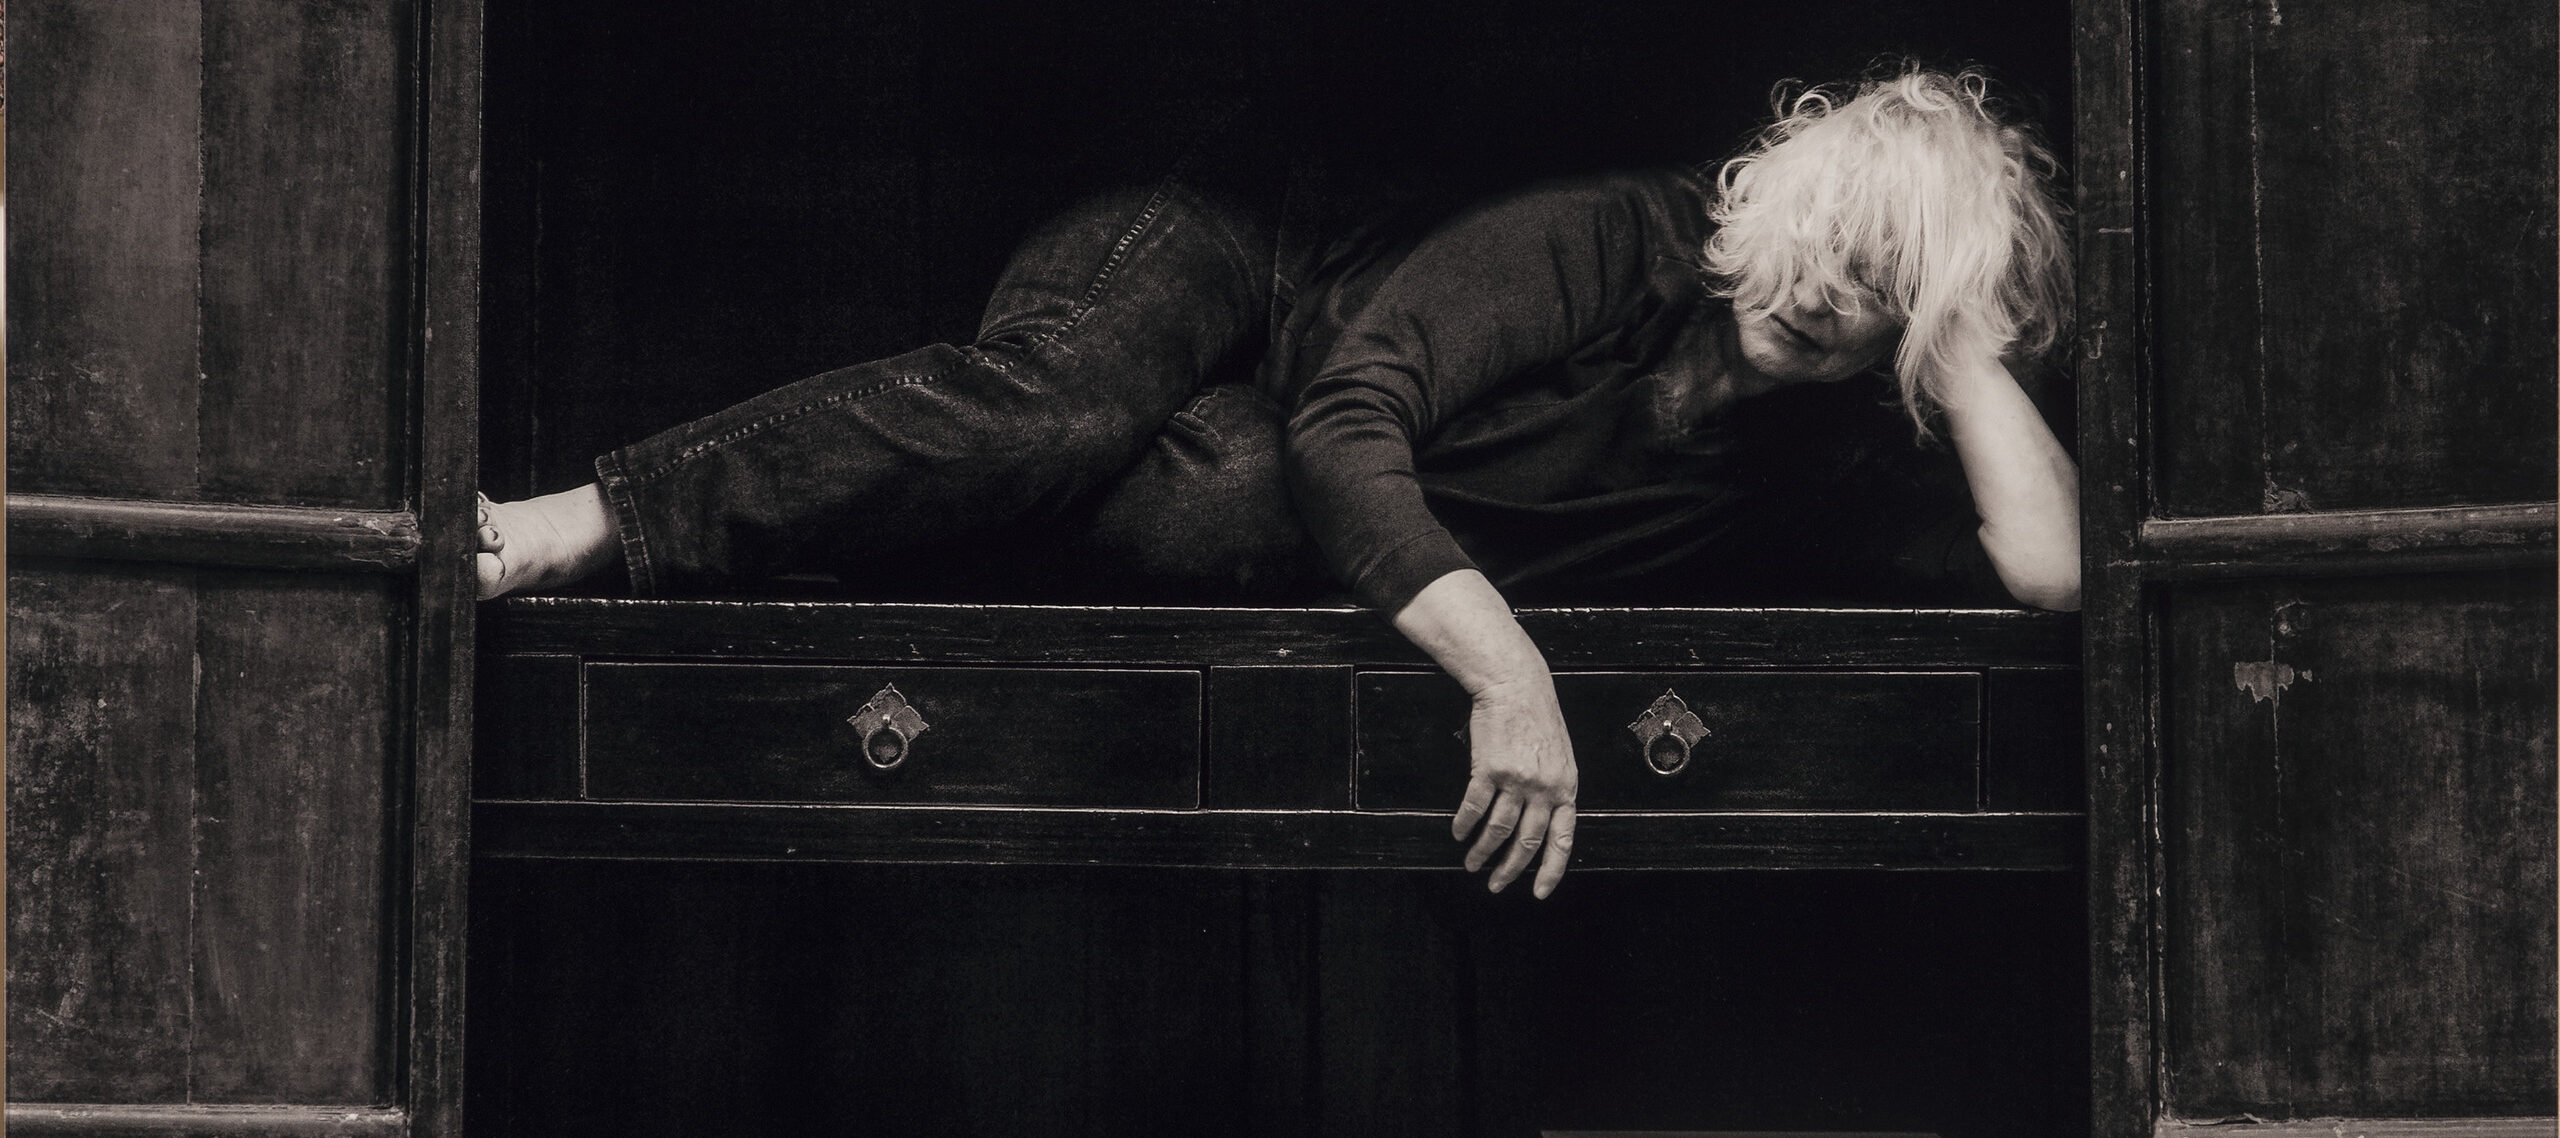 A black-and-white self-portrait of a light-skinned older woman with shoulder-length blonde hair who lays on the middle shelf of a large wooden cabinent. She is in a relaxed fetal position; one hand props her head up and the other is draped over the shelf. Above her a collection of tiny statues are arranged by size, on the shelf below her are a tea pot and two boxes.